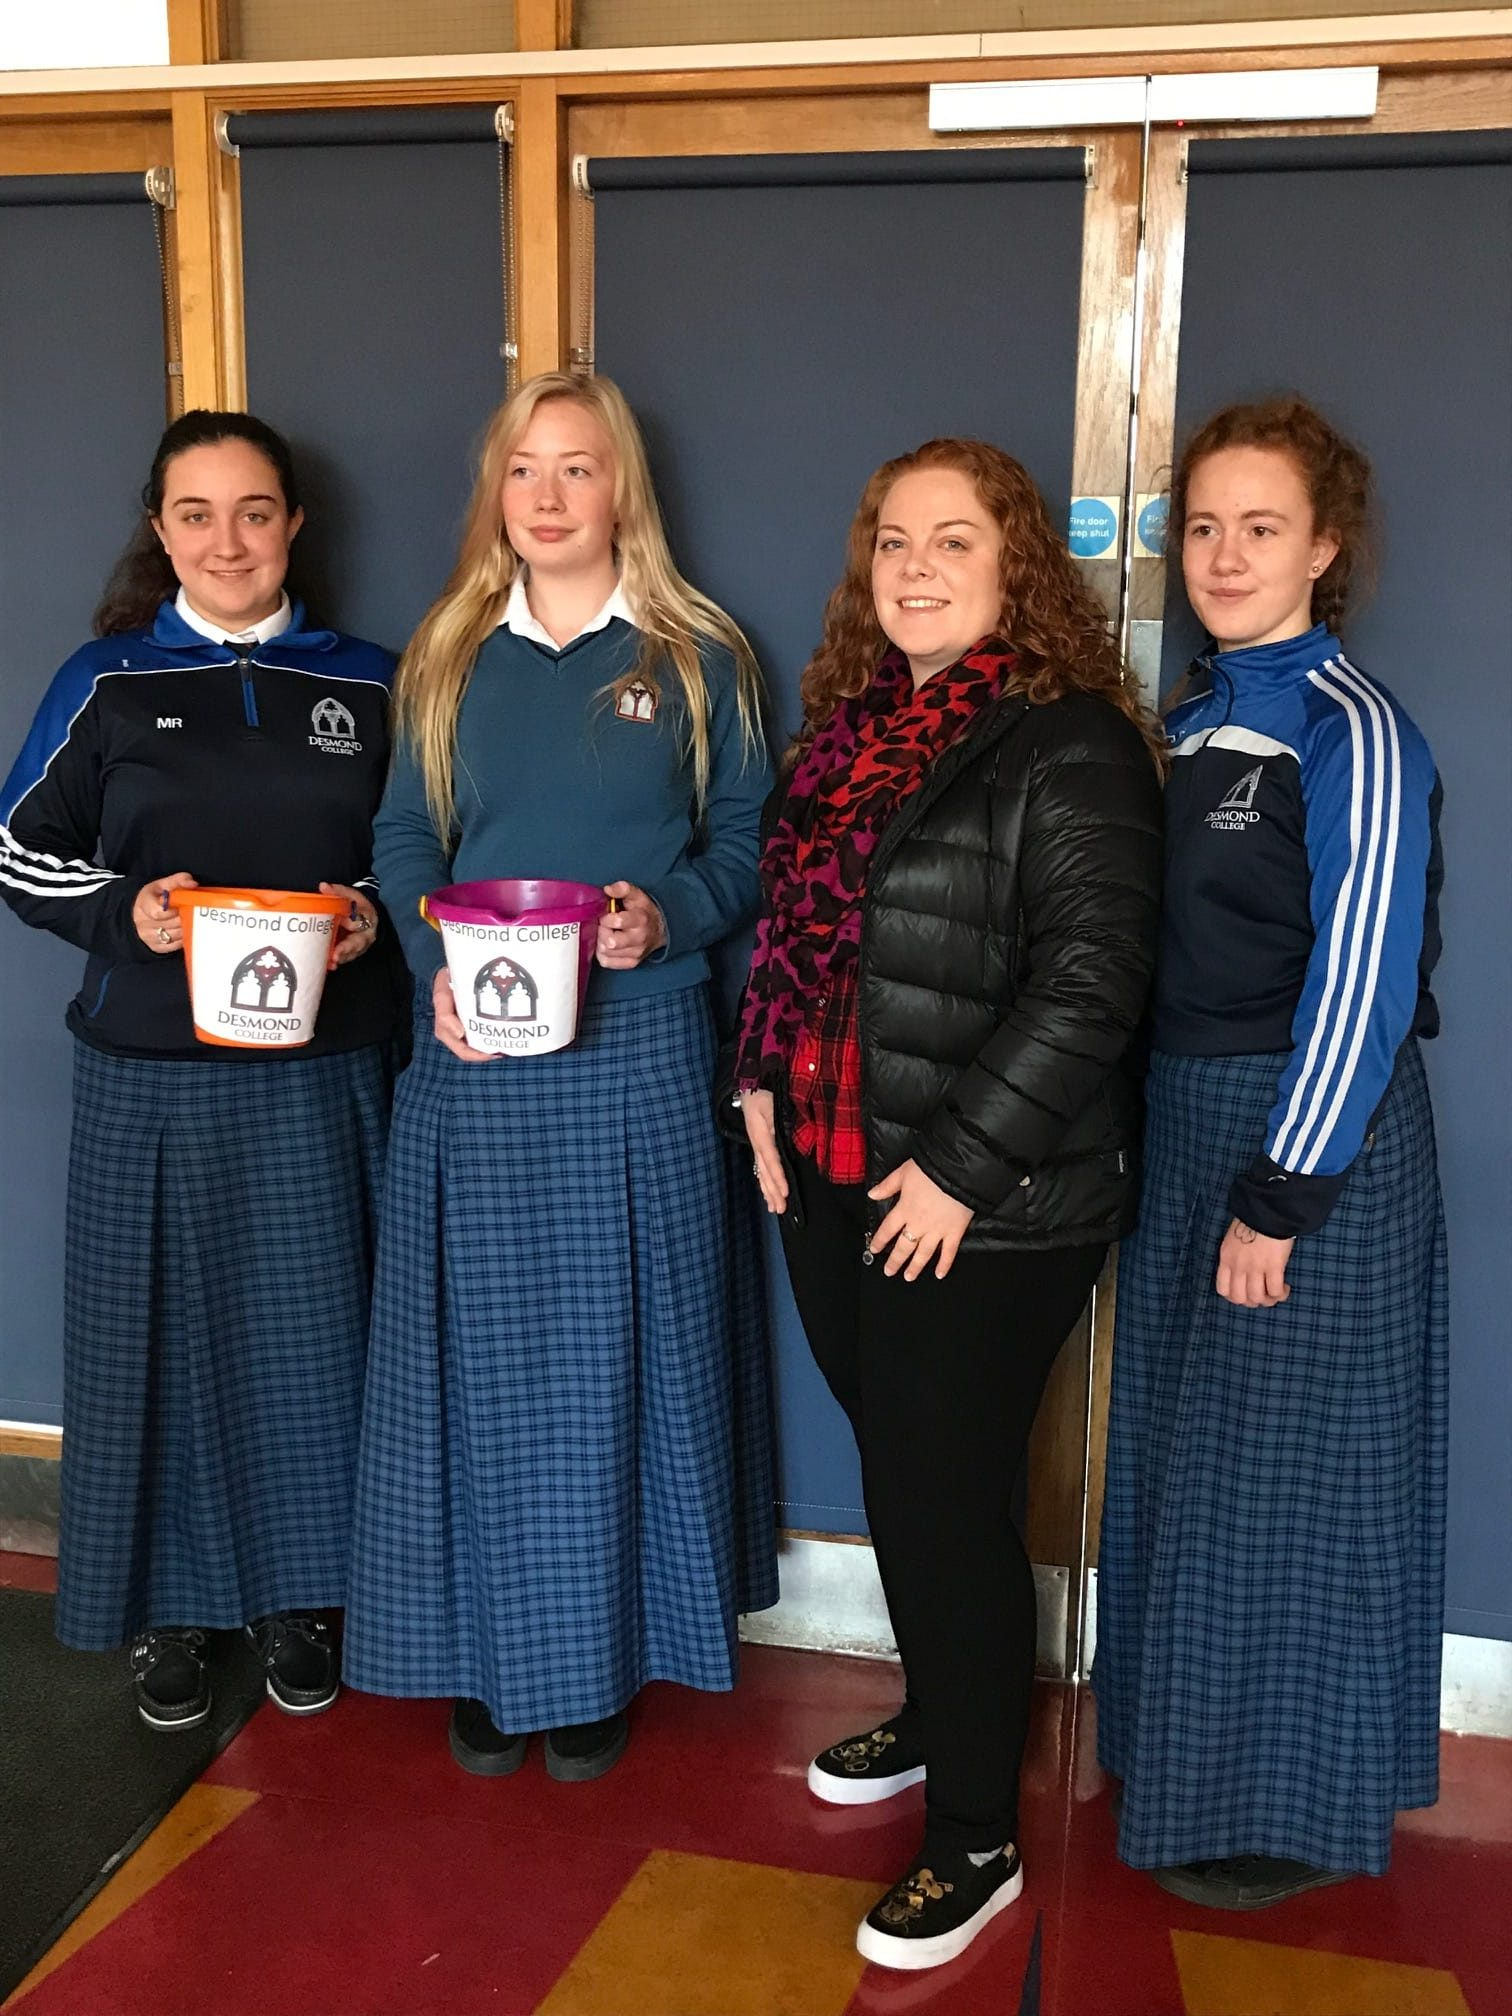 Nov 2017: Desmond College Students pictured with Bridget Philips (past pupil) who will travel to Sudan and Volunteer as a nurse